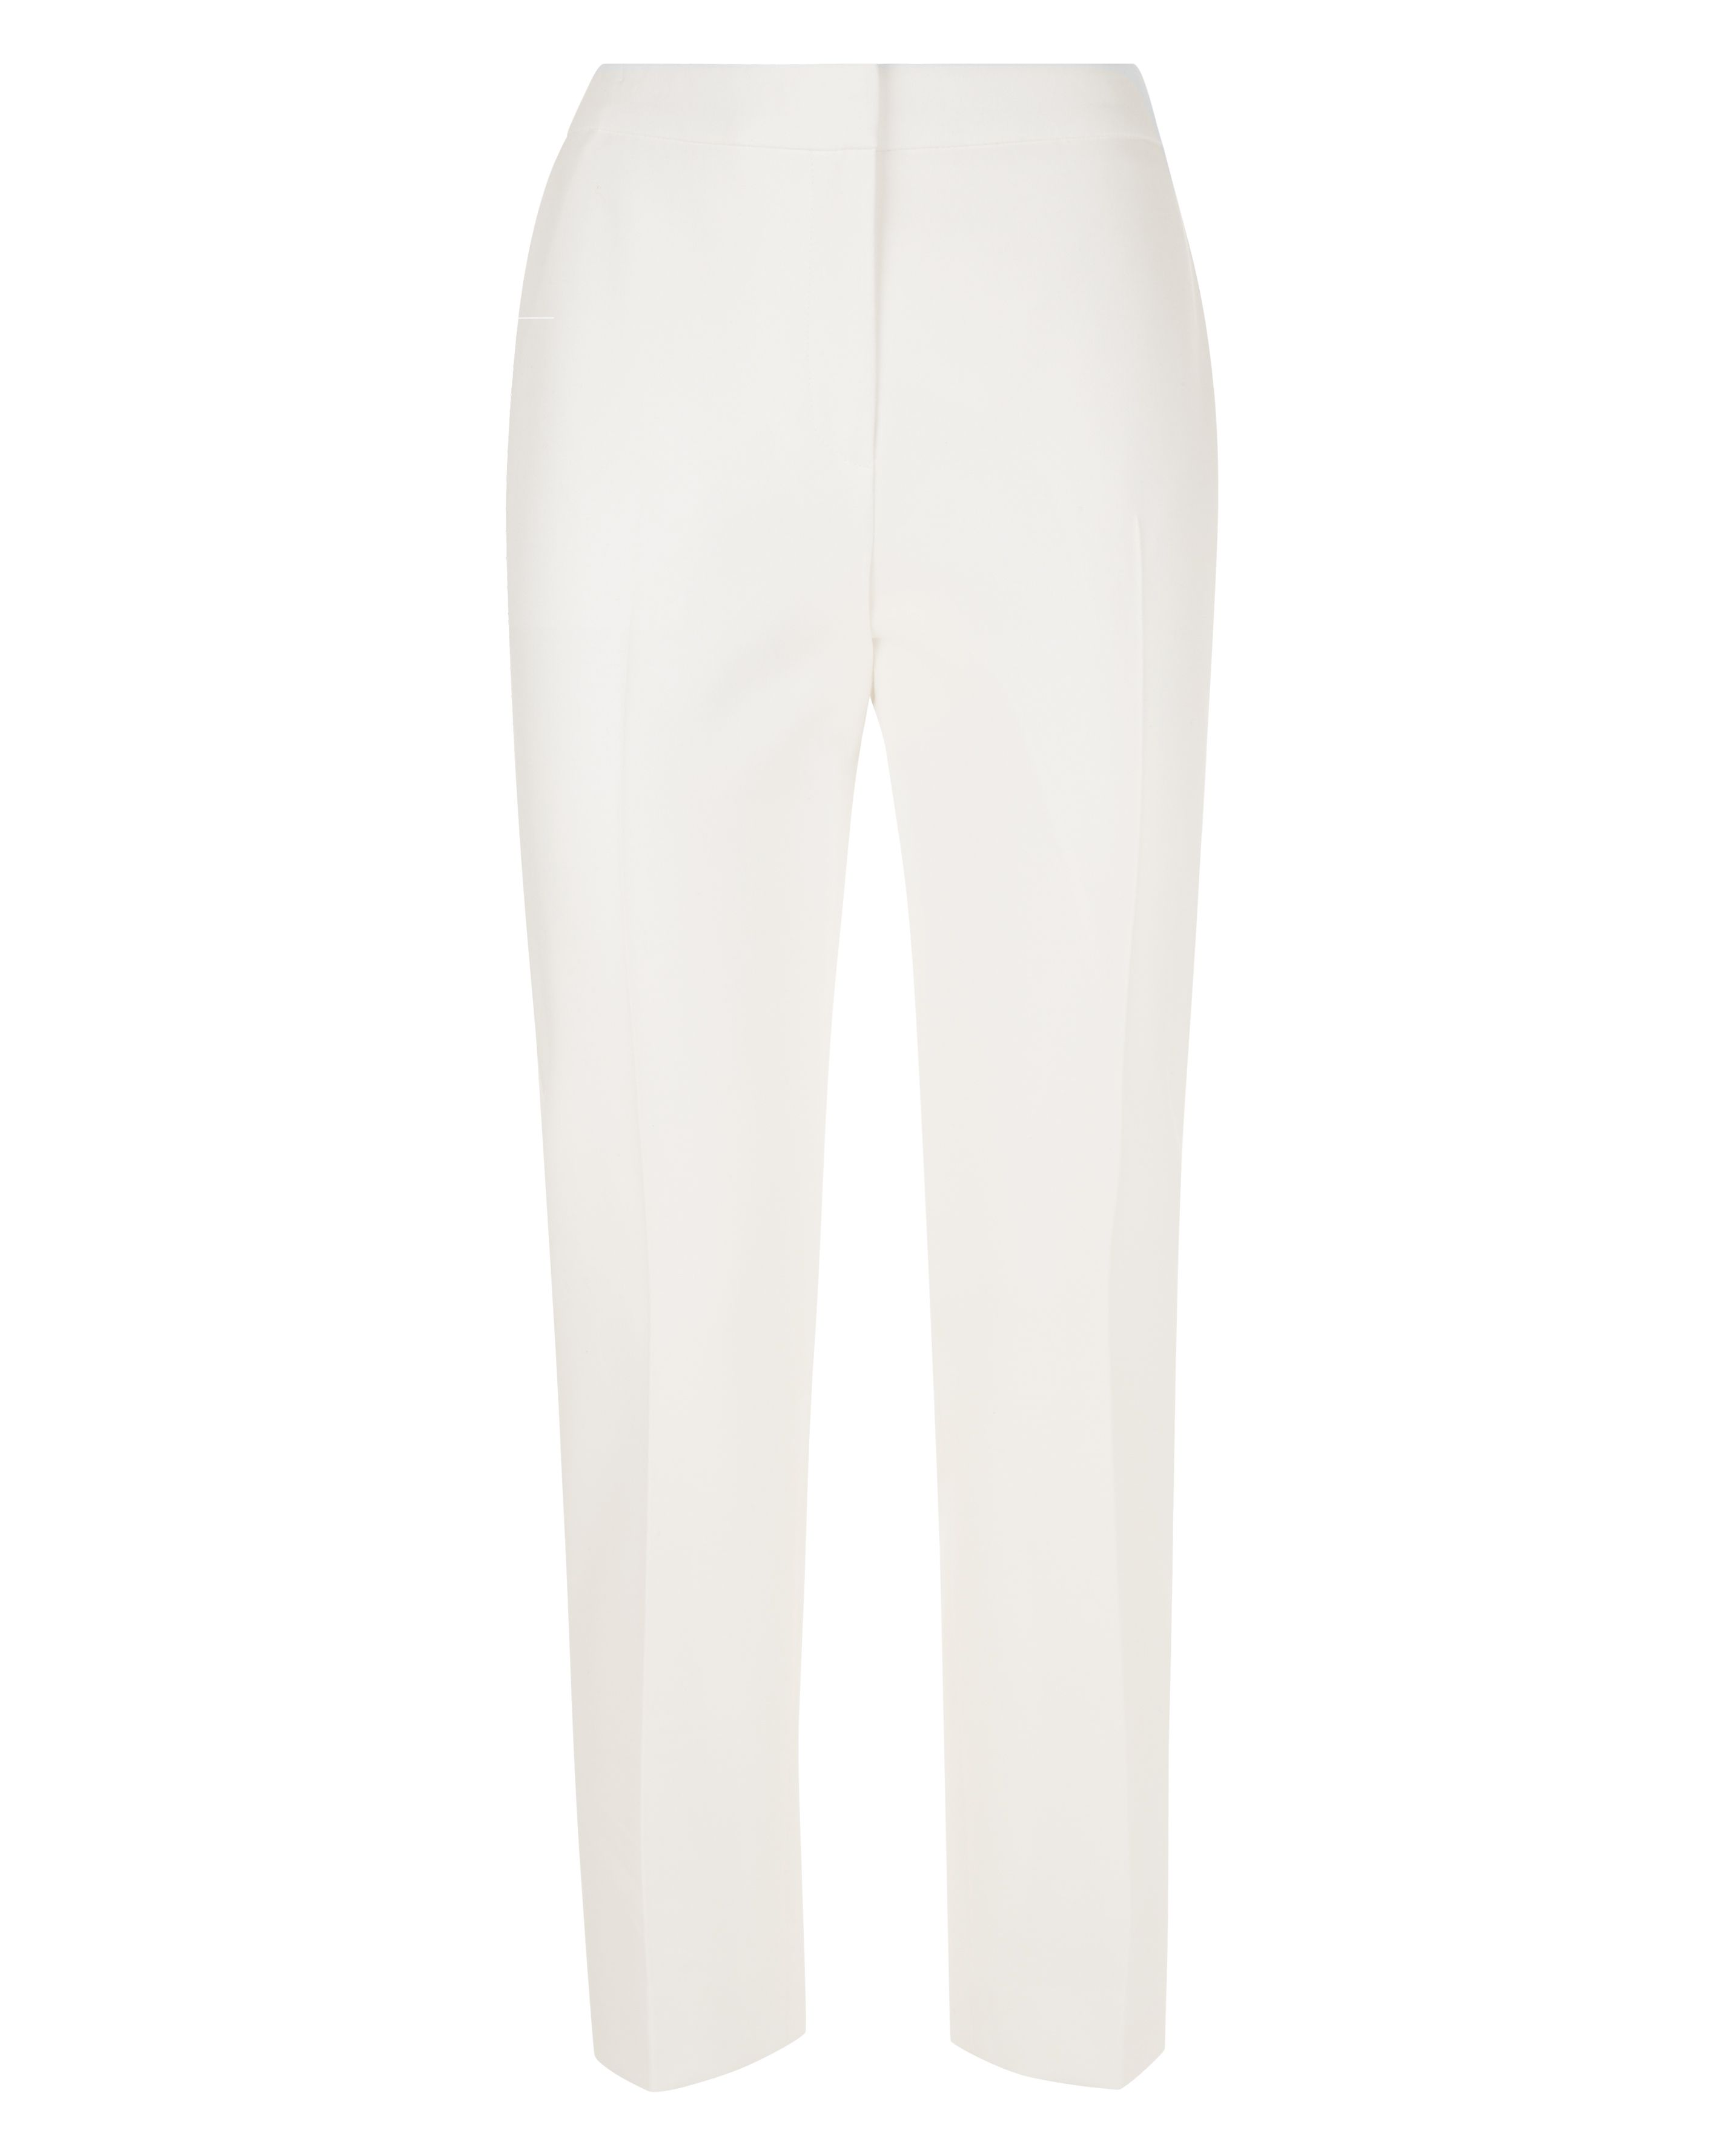 Jaeger Cropped Stretch Trousers, White